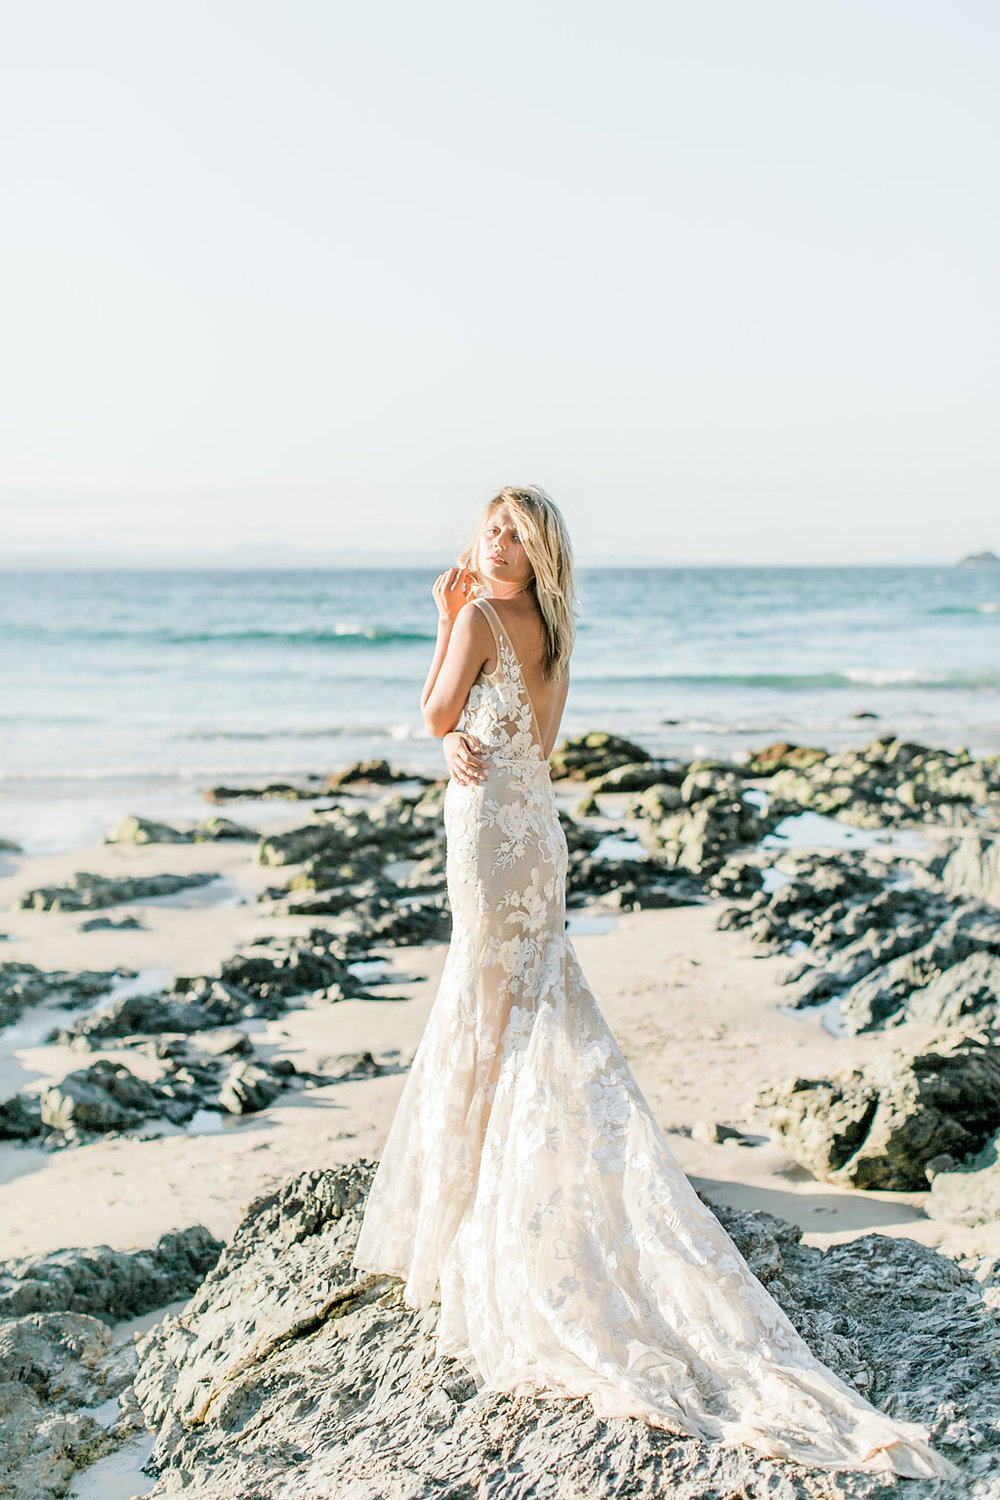 The Frankie wedding dress by Made With Love Bridal featured on LOVE FIND CO.